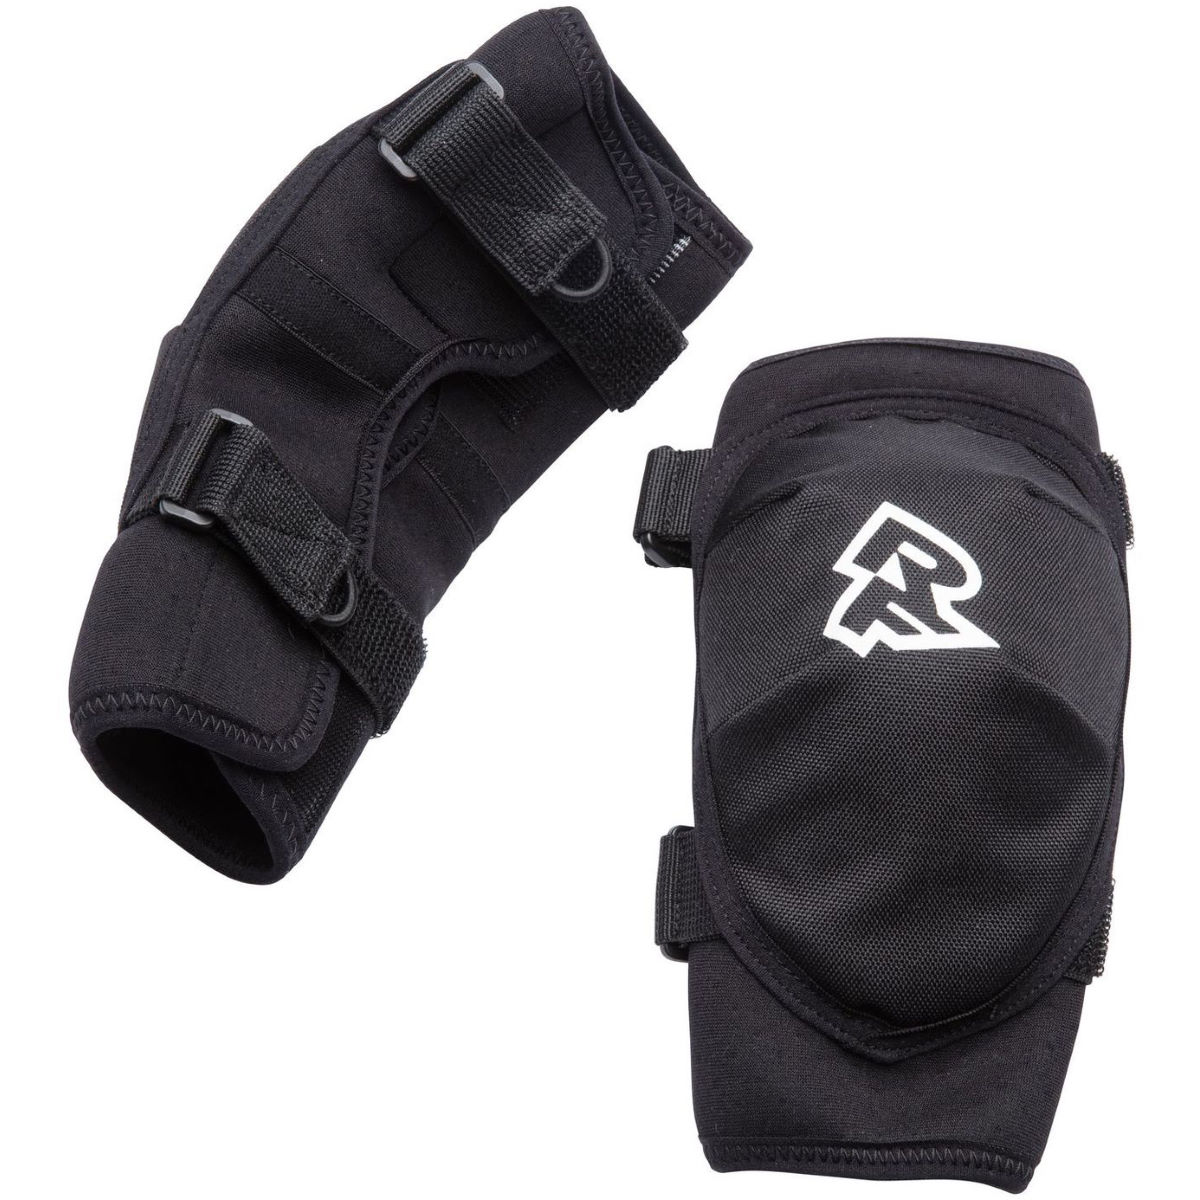 Race Face Youth Sendy Elbow Pads - S/m Stealth  Elbow Pads